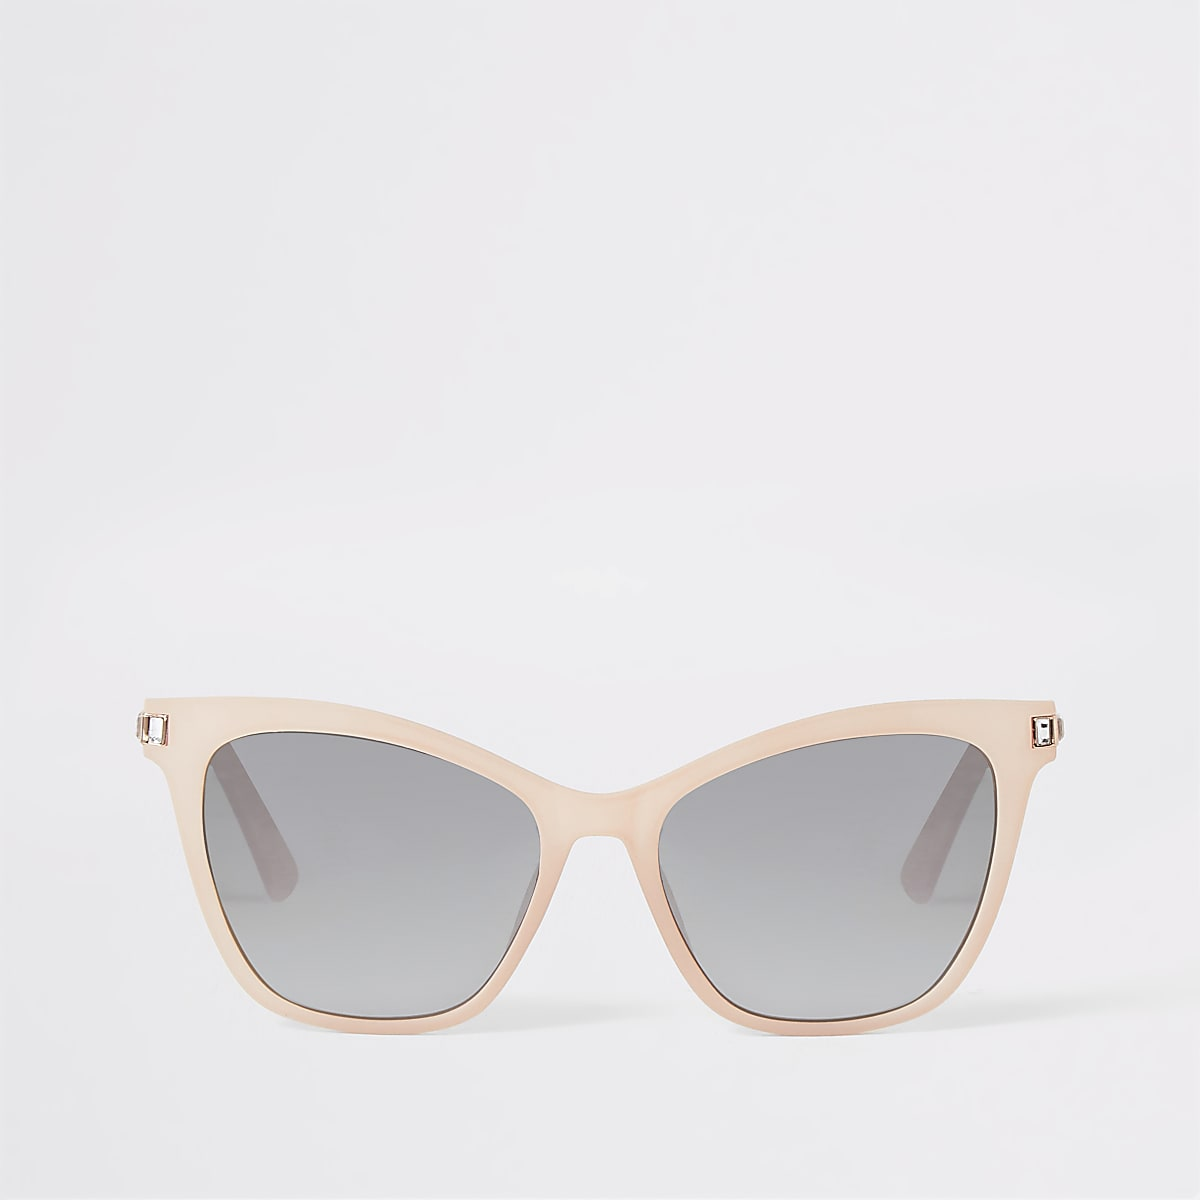 Pink diamante trim sunglasses